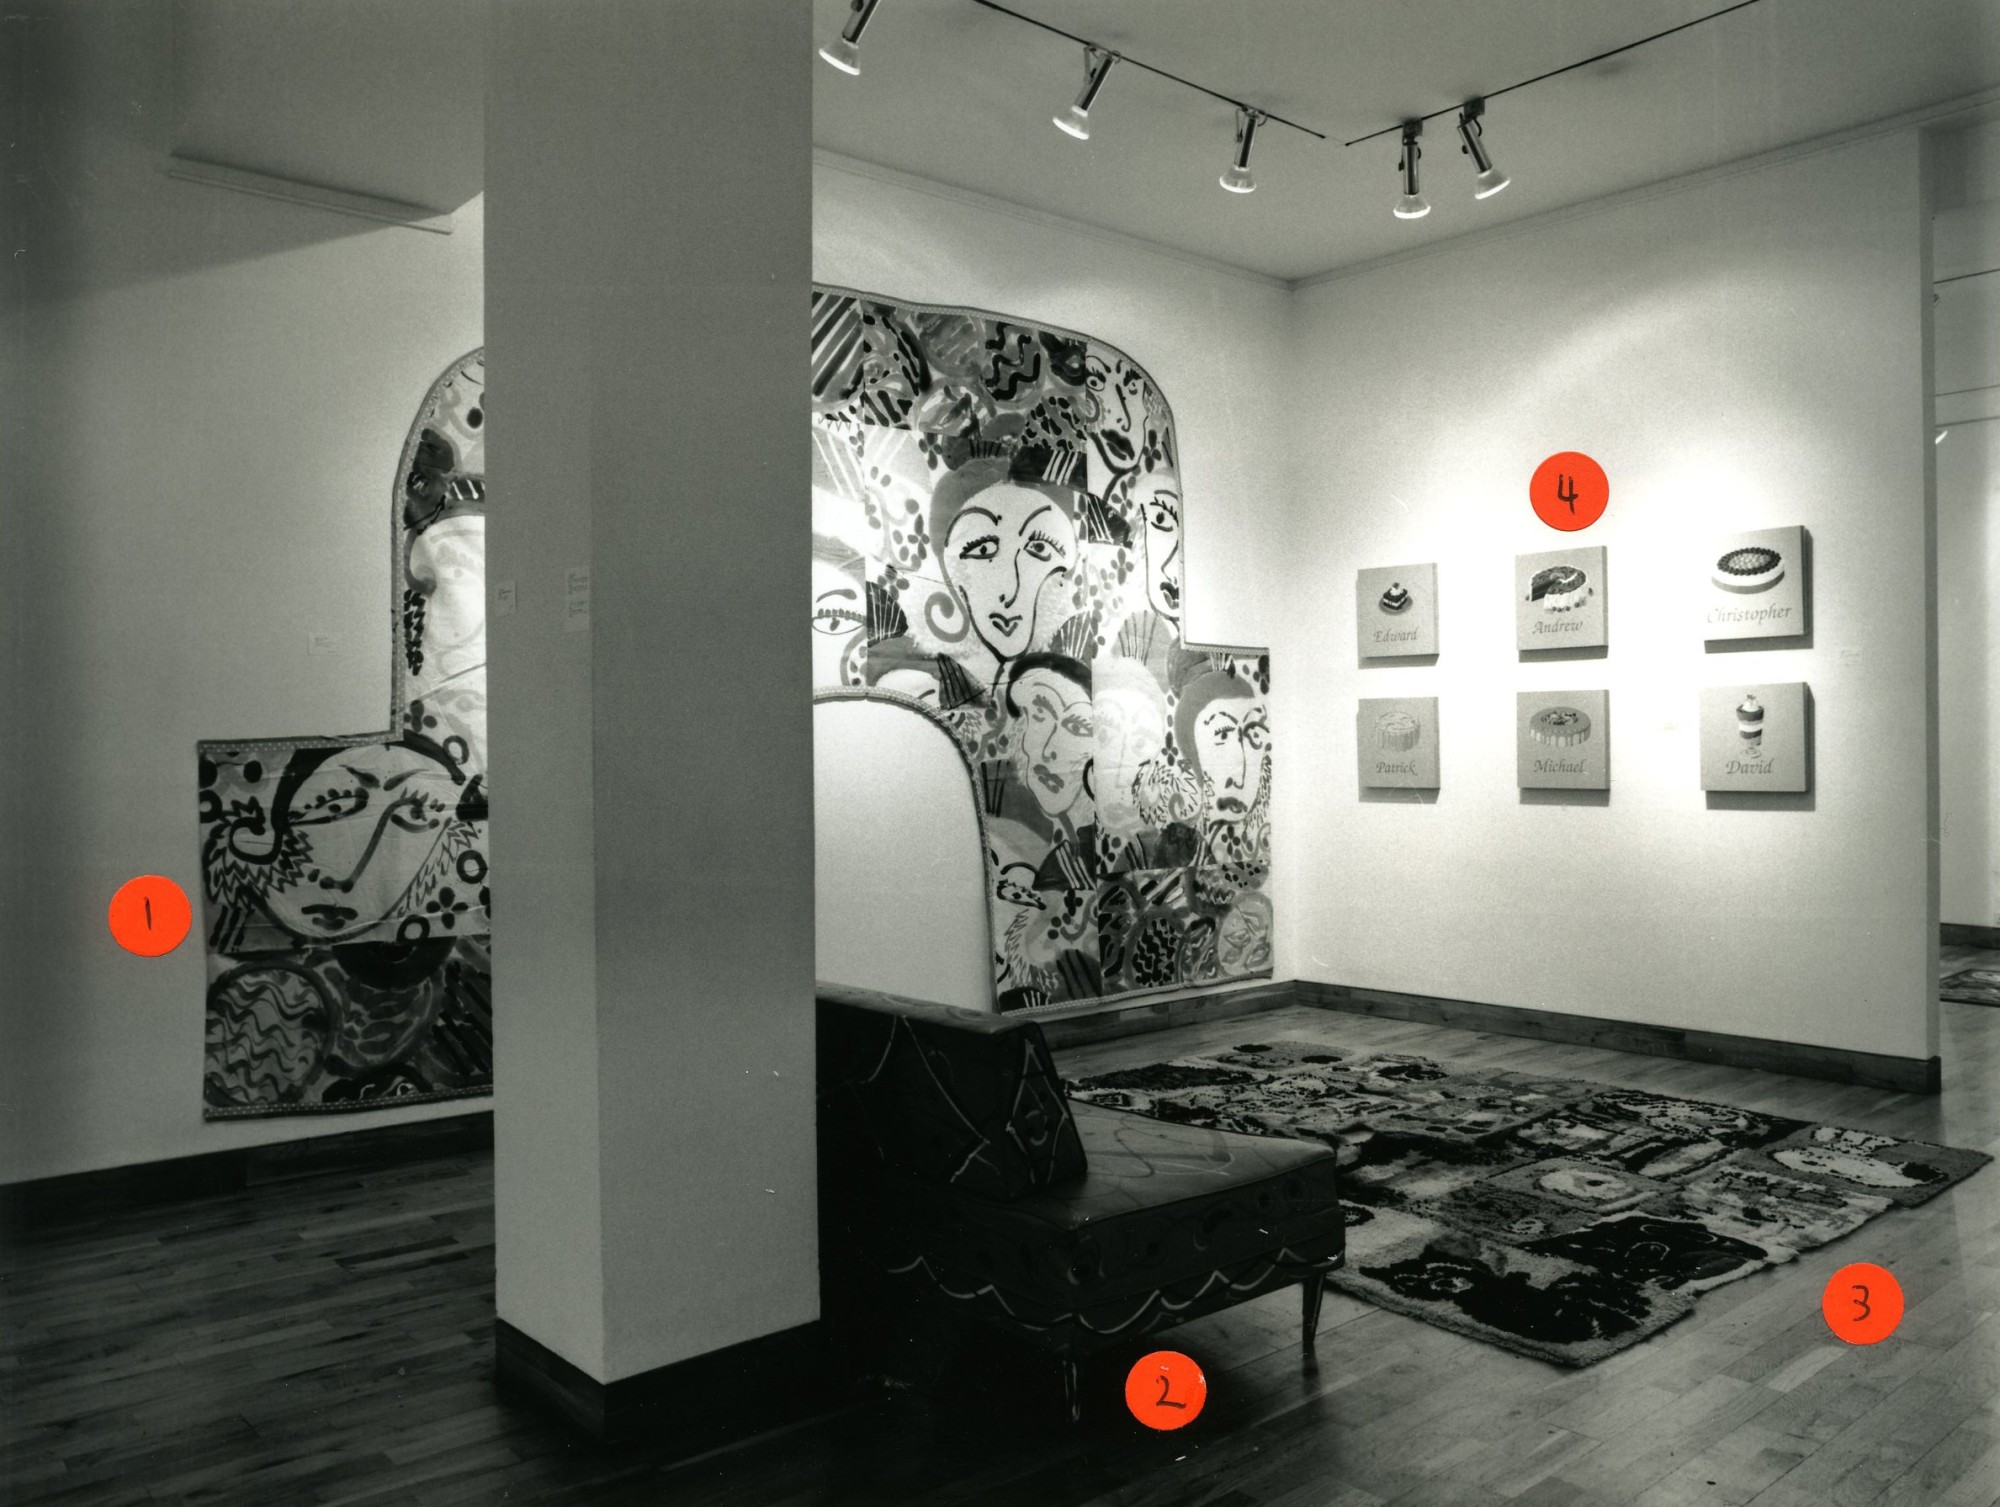 """<span class=""""link fancybox-details-link""""><a href=""""/exhibitions/153/works/image_standalone654/"""">View Detail Page</a></span><p>HOLLYBURY USA   A REFLECTION ON BLOOMSBURY   23 NOV - 23 DEC 1999   Installation View</p>"""